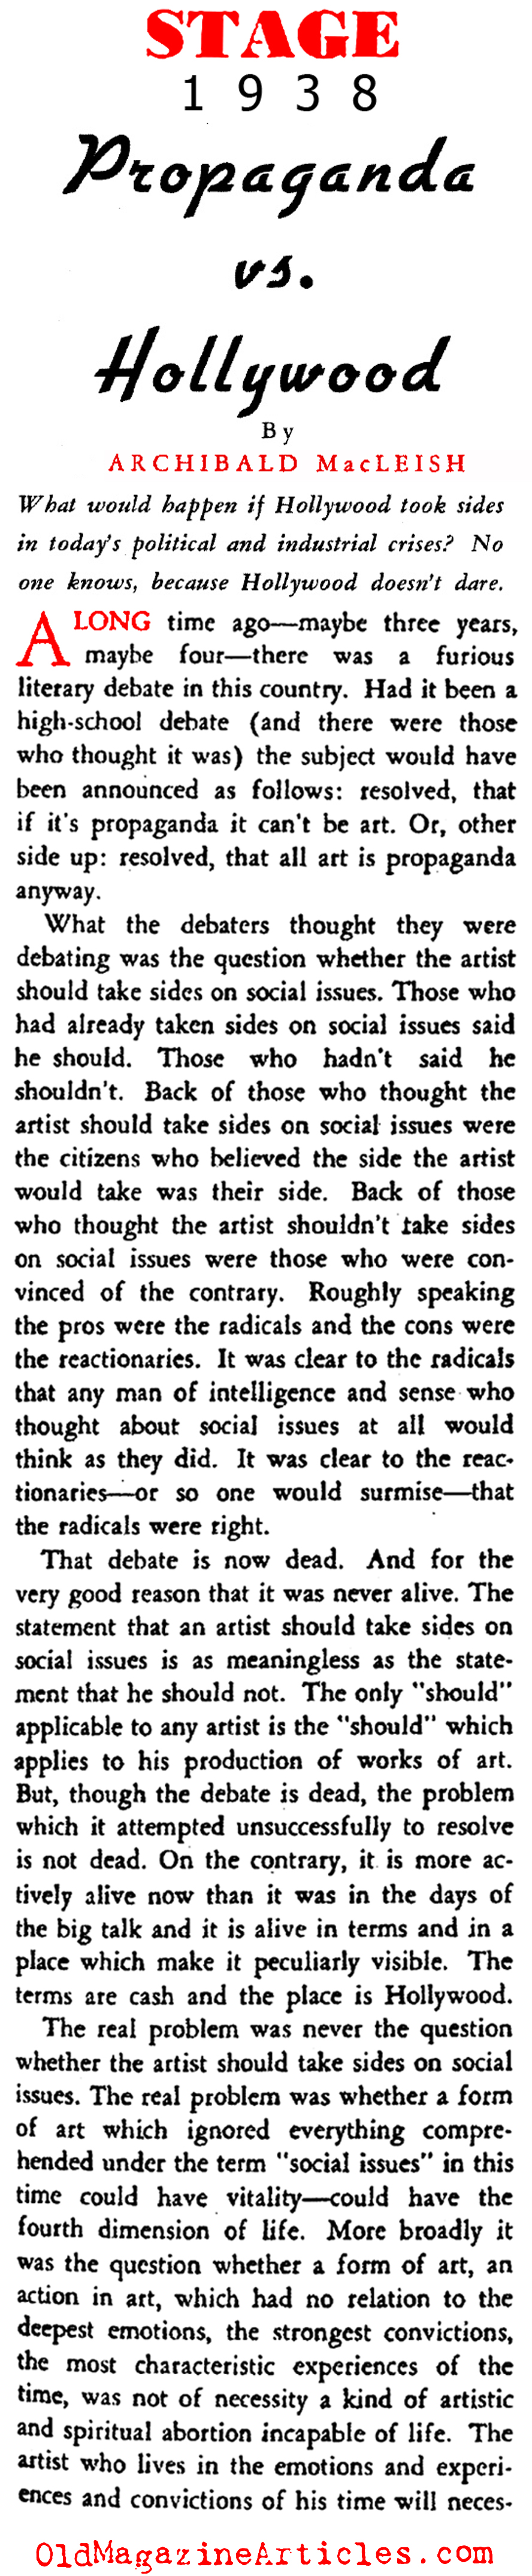 Social Issues in Movies (Stage Magazine, 1938)